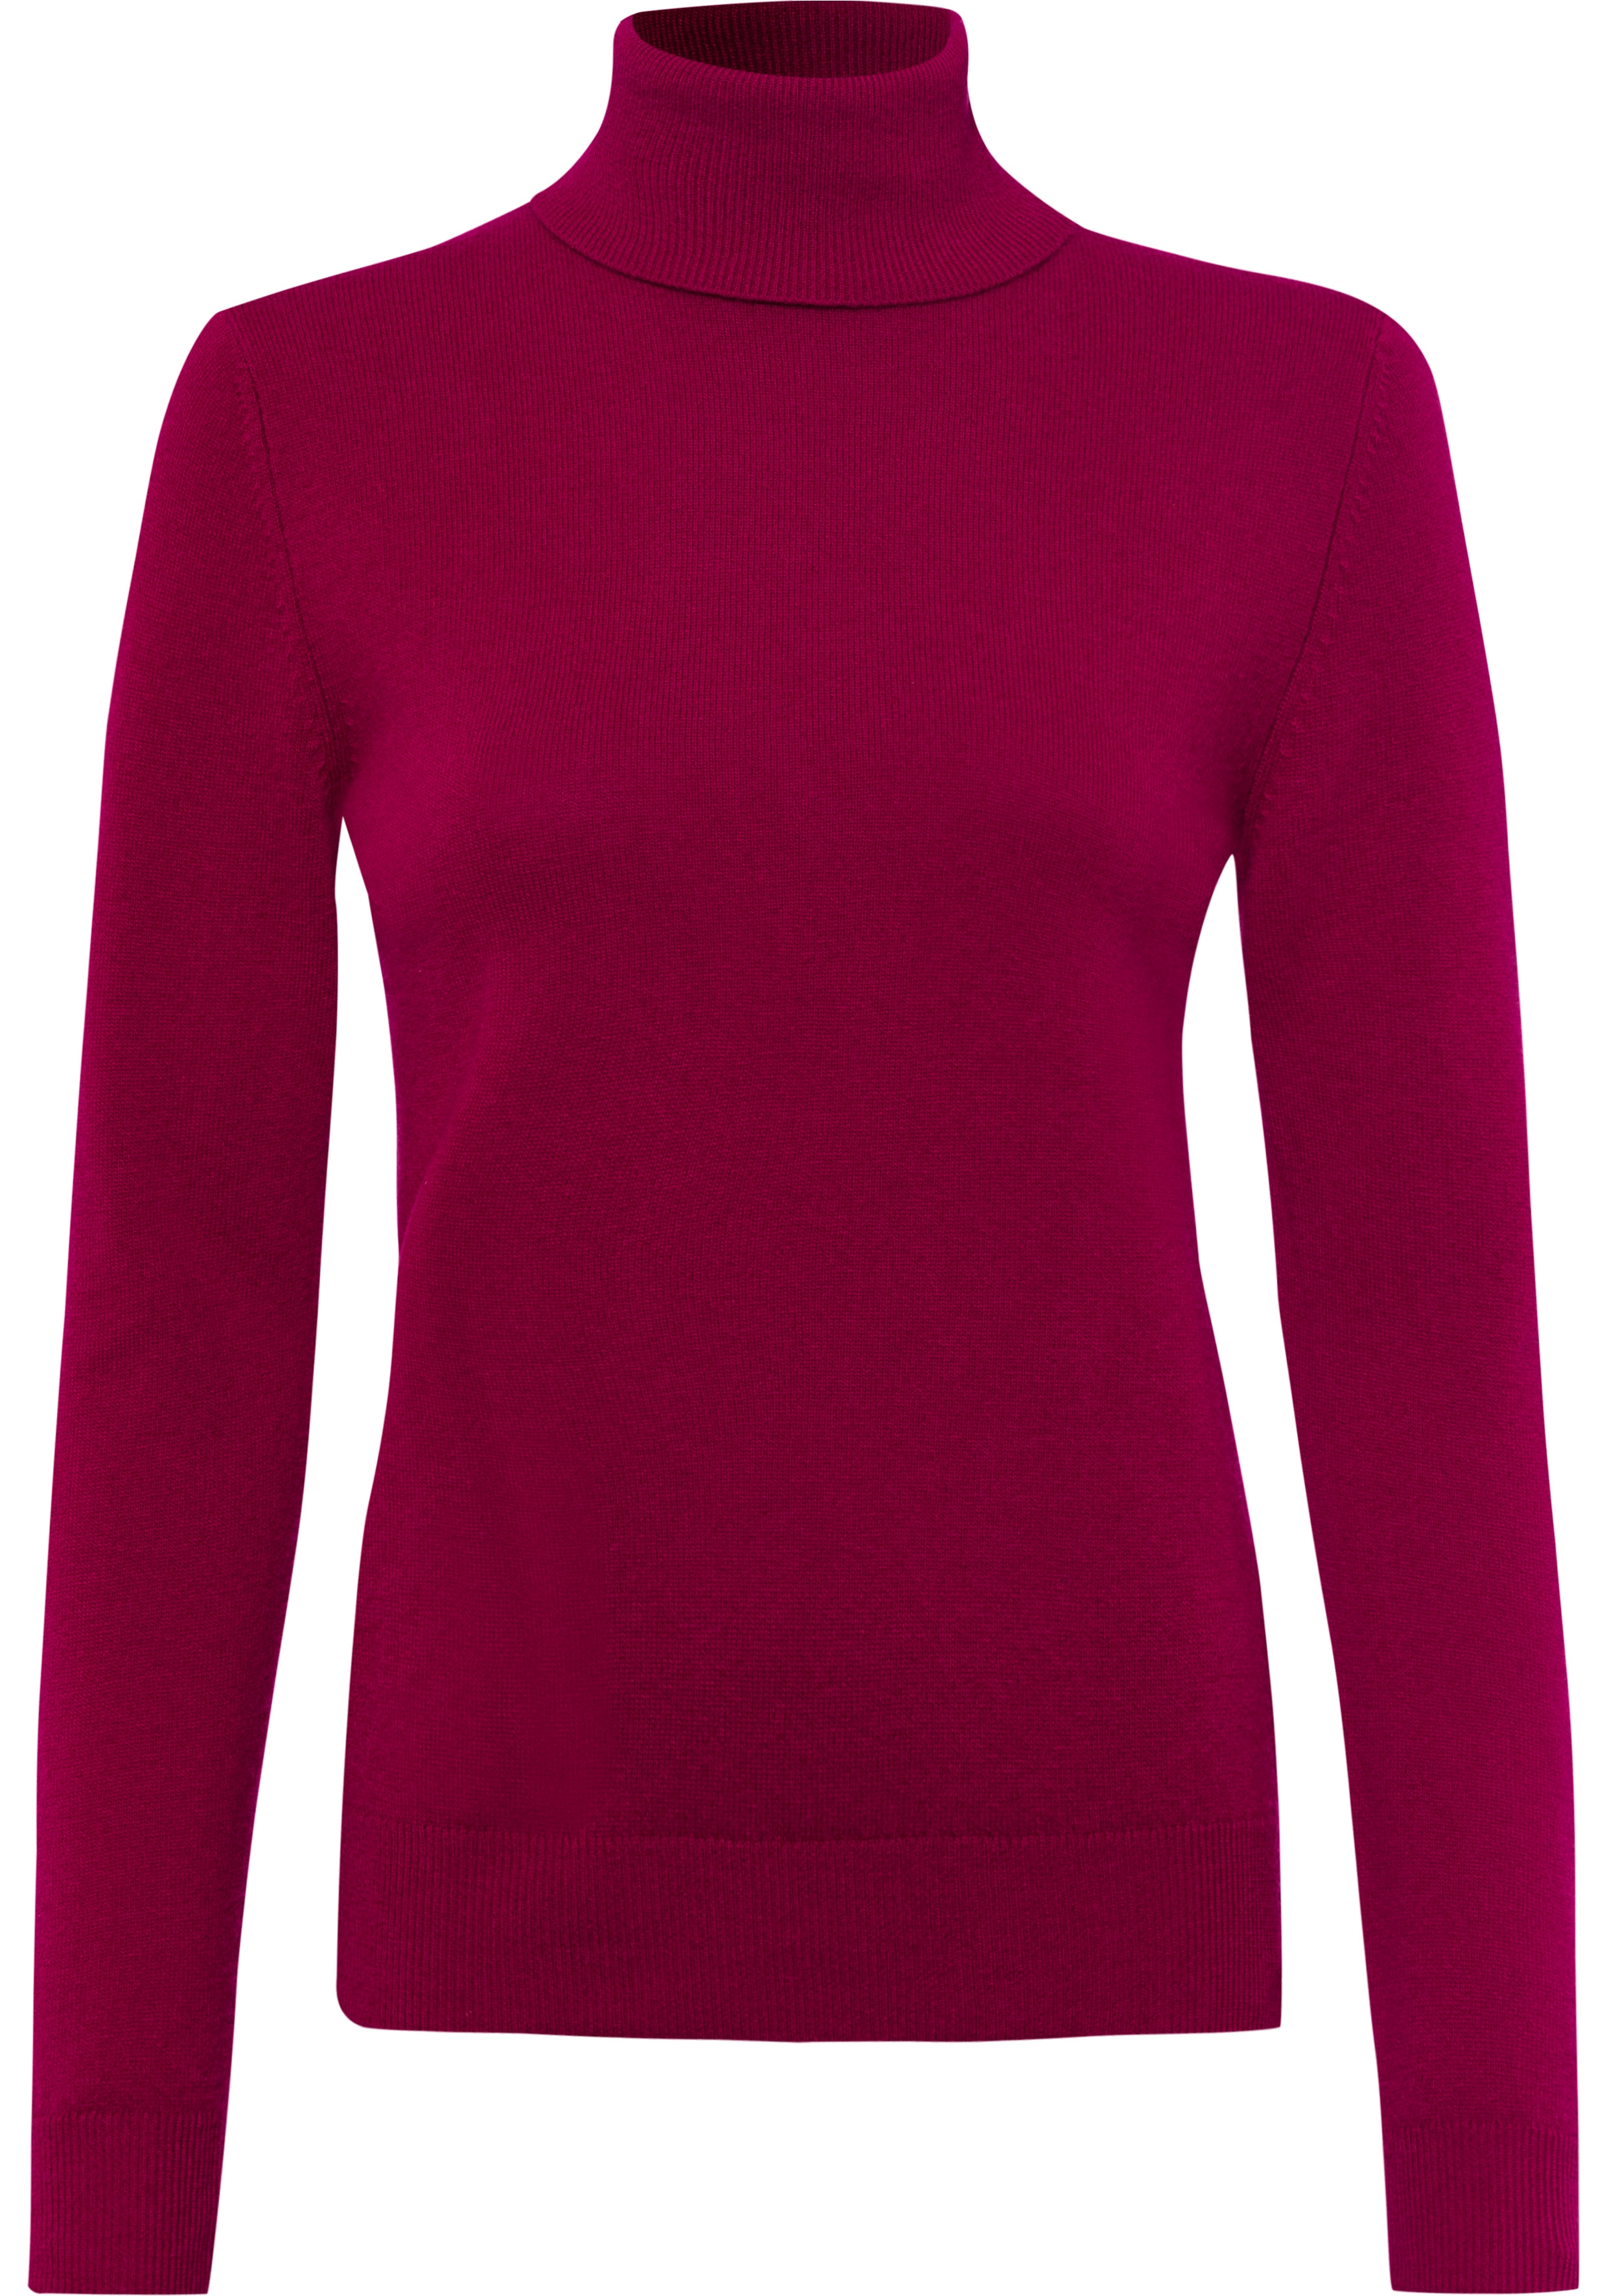 united colors of benetton -  Wollpullover